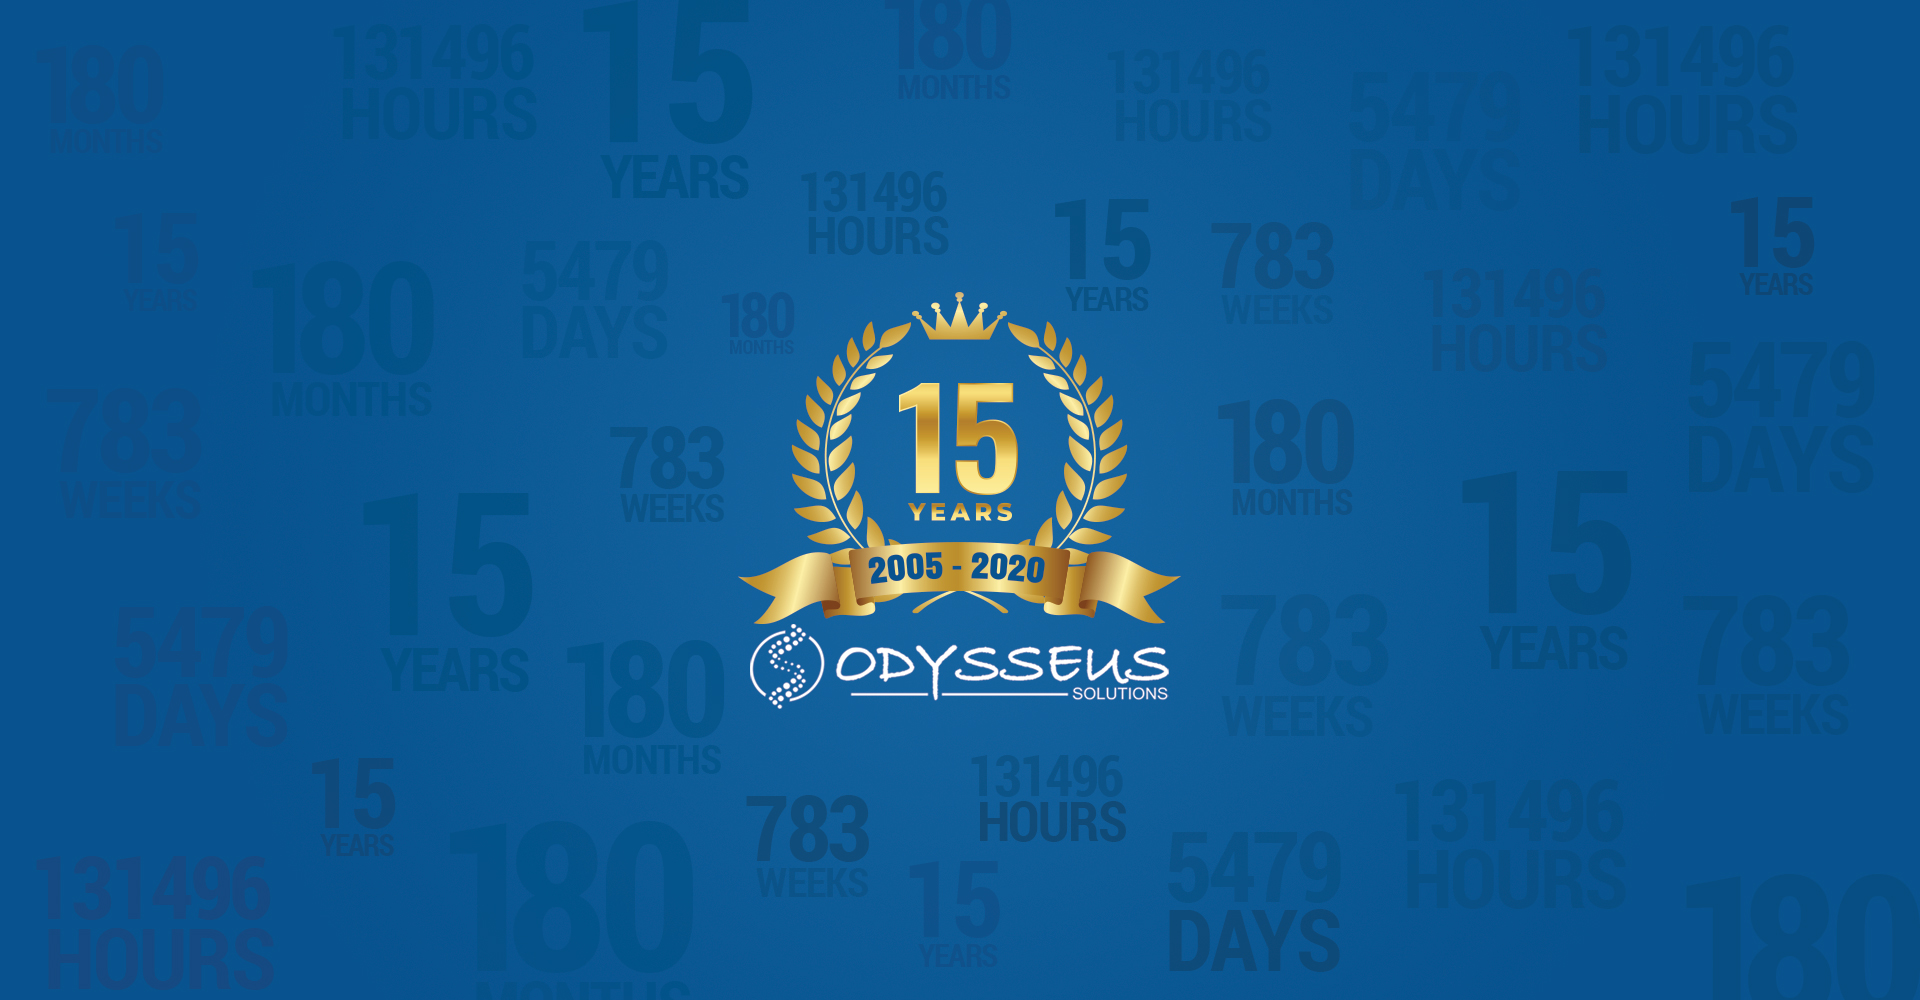 Odysseus 15th Anniversary Celebration